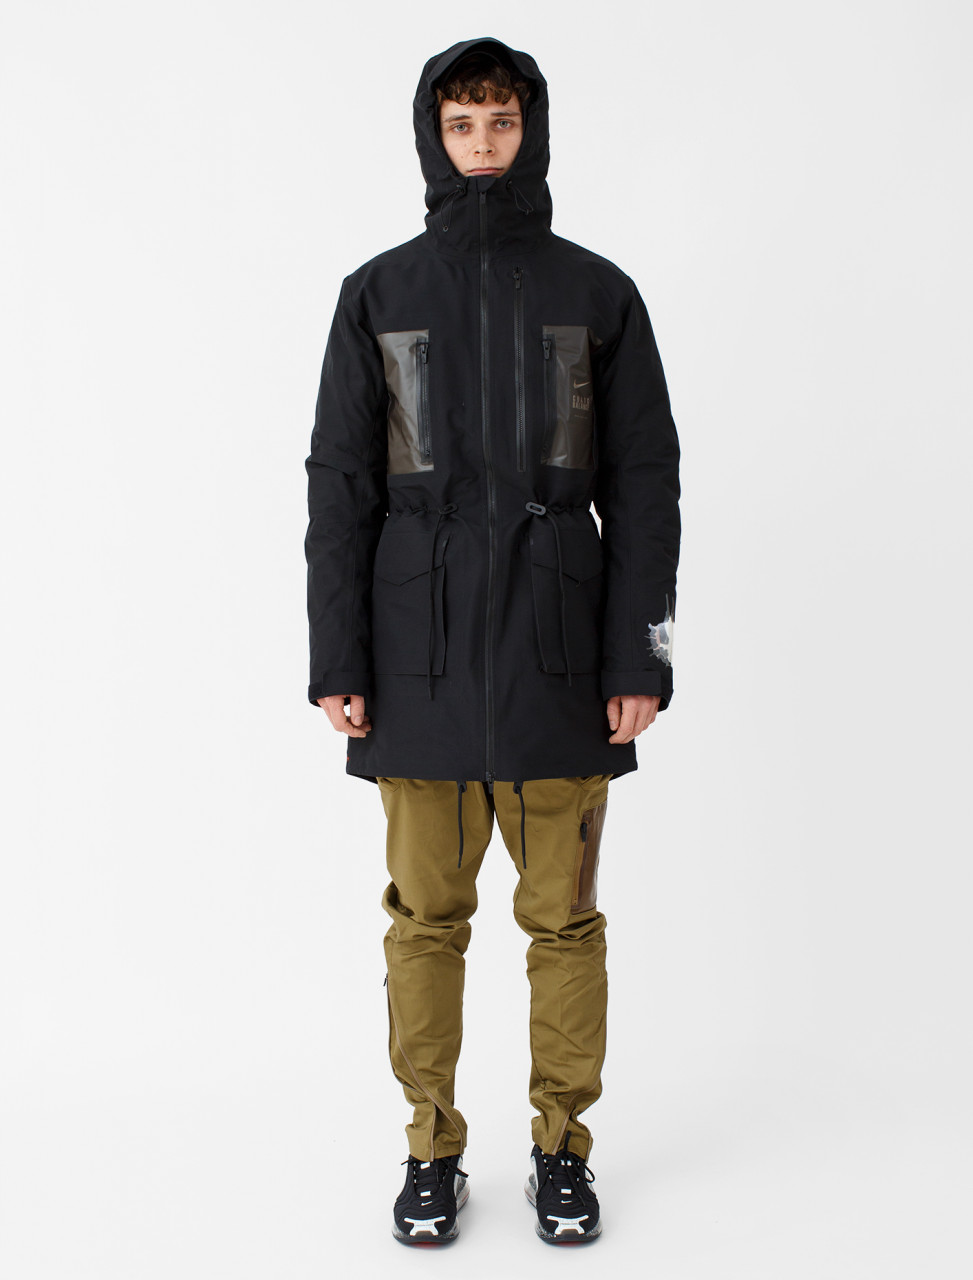 x Undercover Fish-Tail Parka in Black